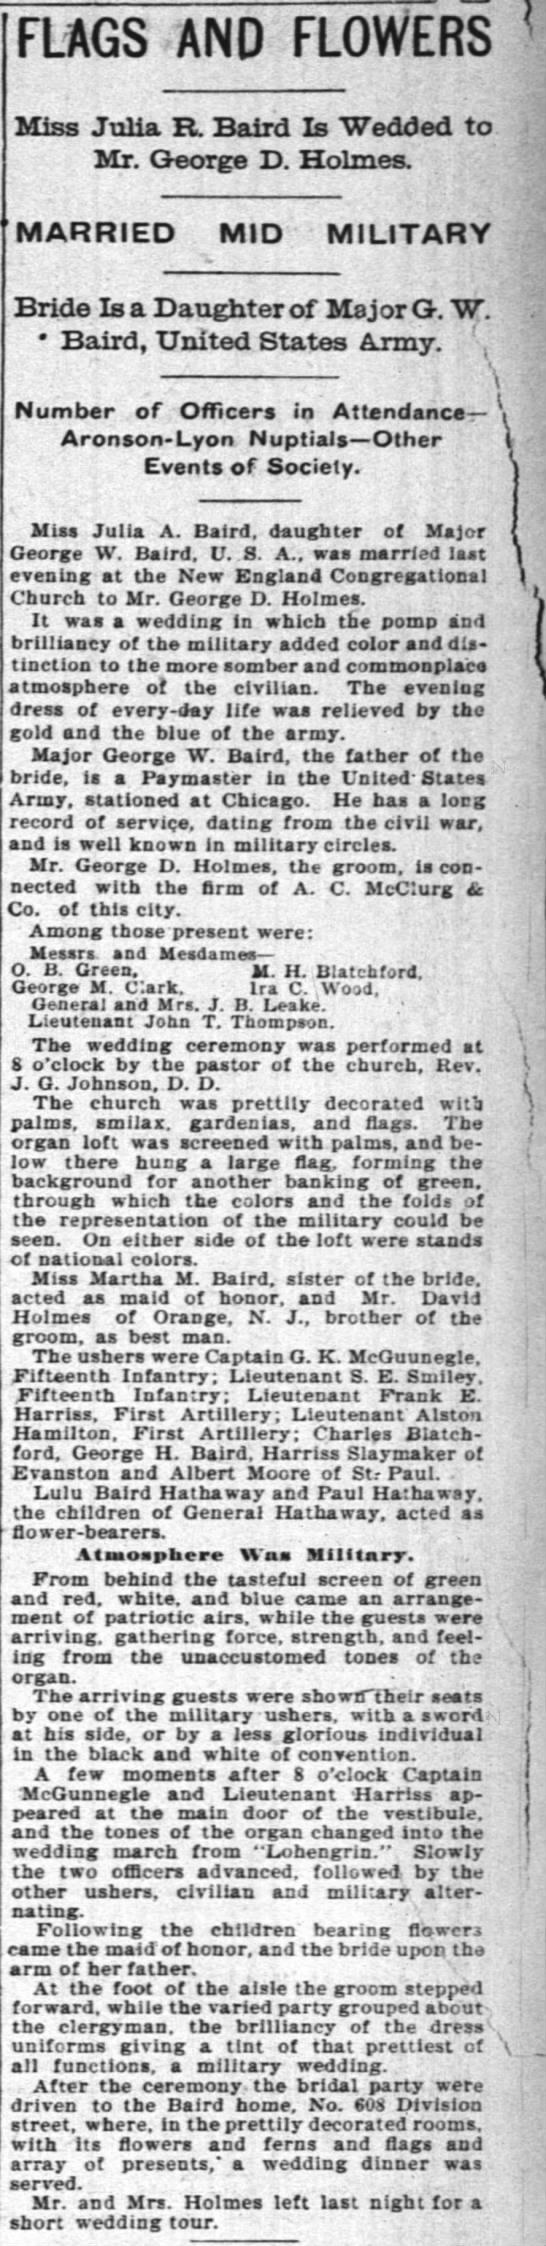 julia's wedding 6/3/1896 - FLAGS AND FLOWERS Miss Julia R, Baird Is Wedded...